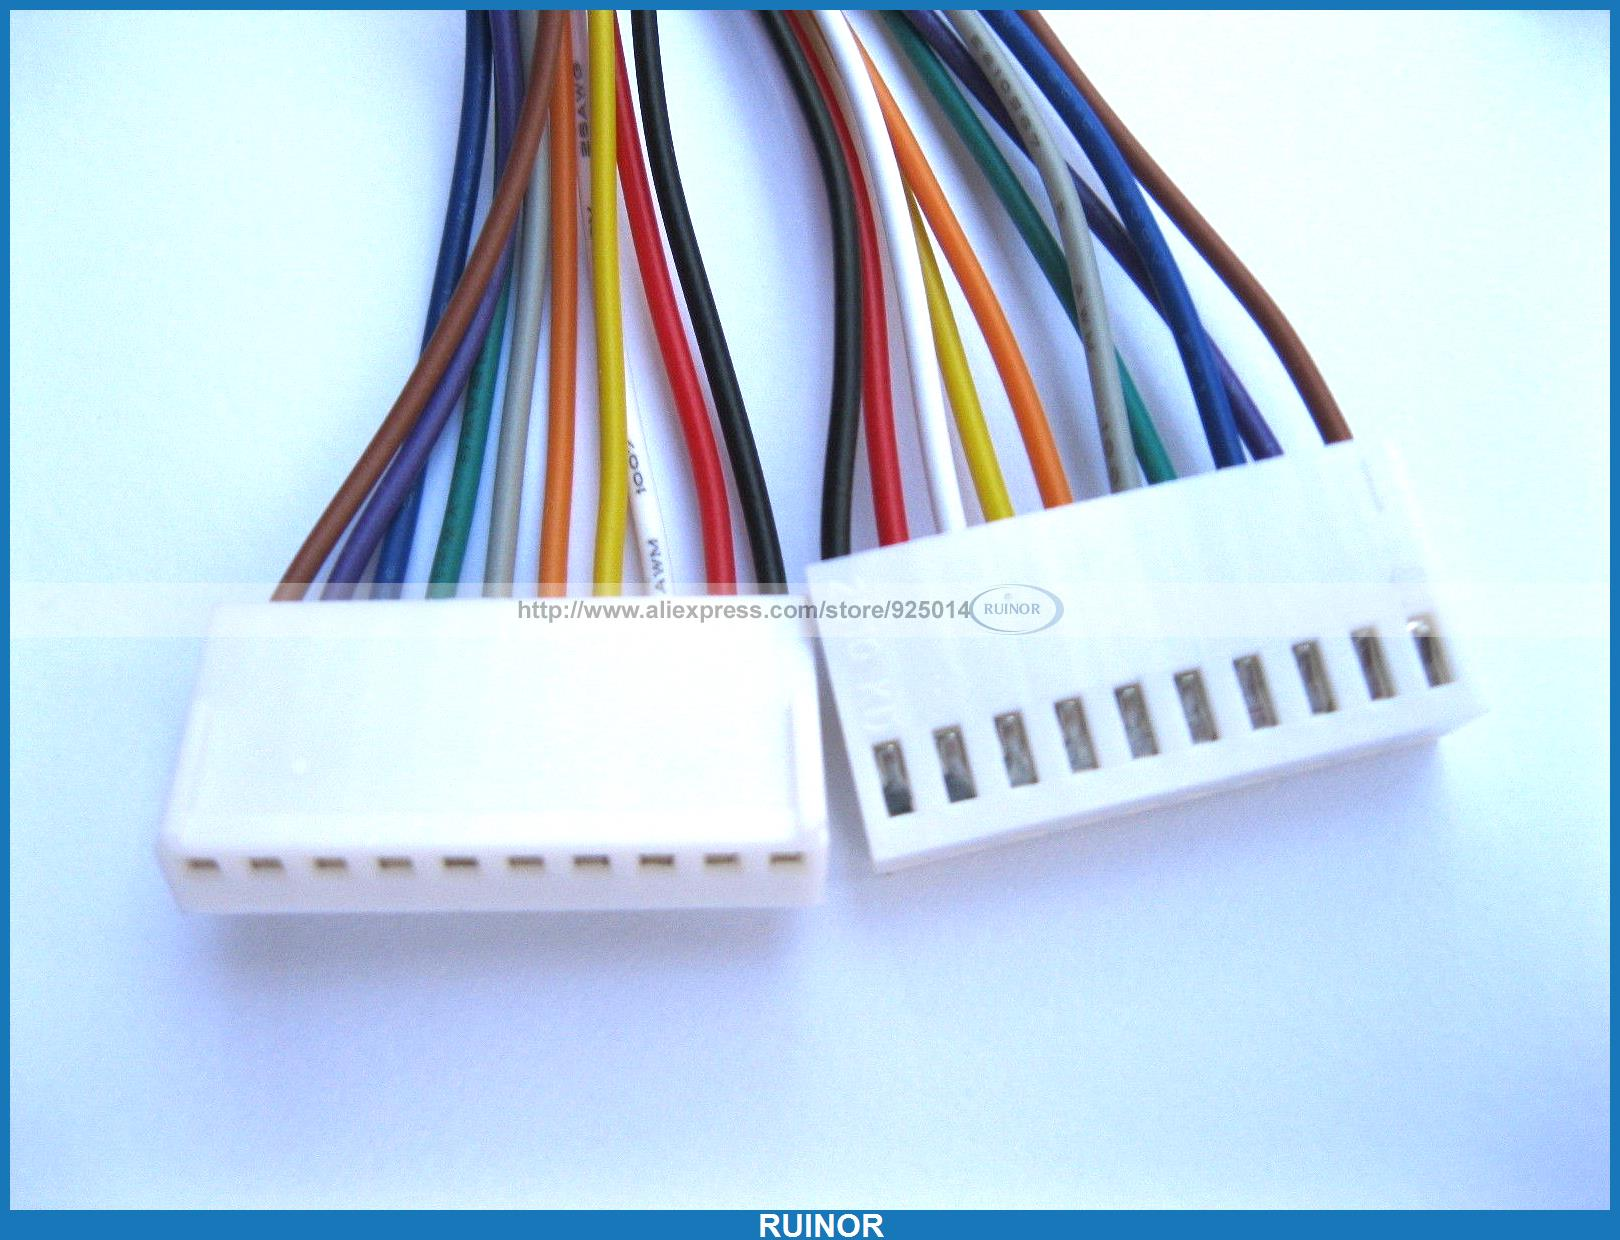 15 Pcs/LOT 2510 2.54mm Pitch 10 Pin Female Connector with 26AWG 300mm Leads Cable